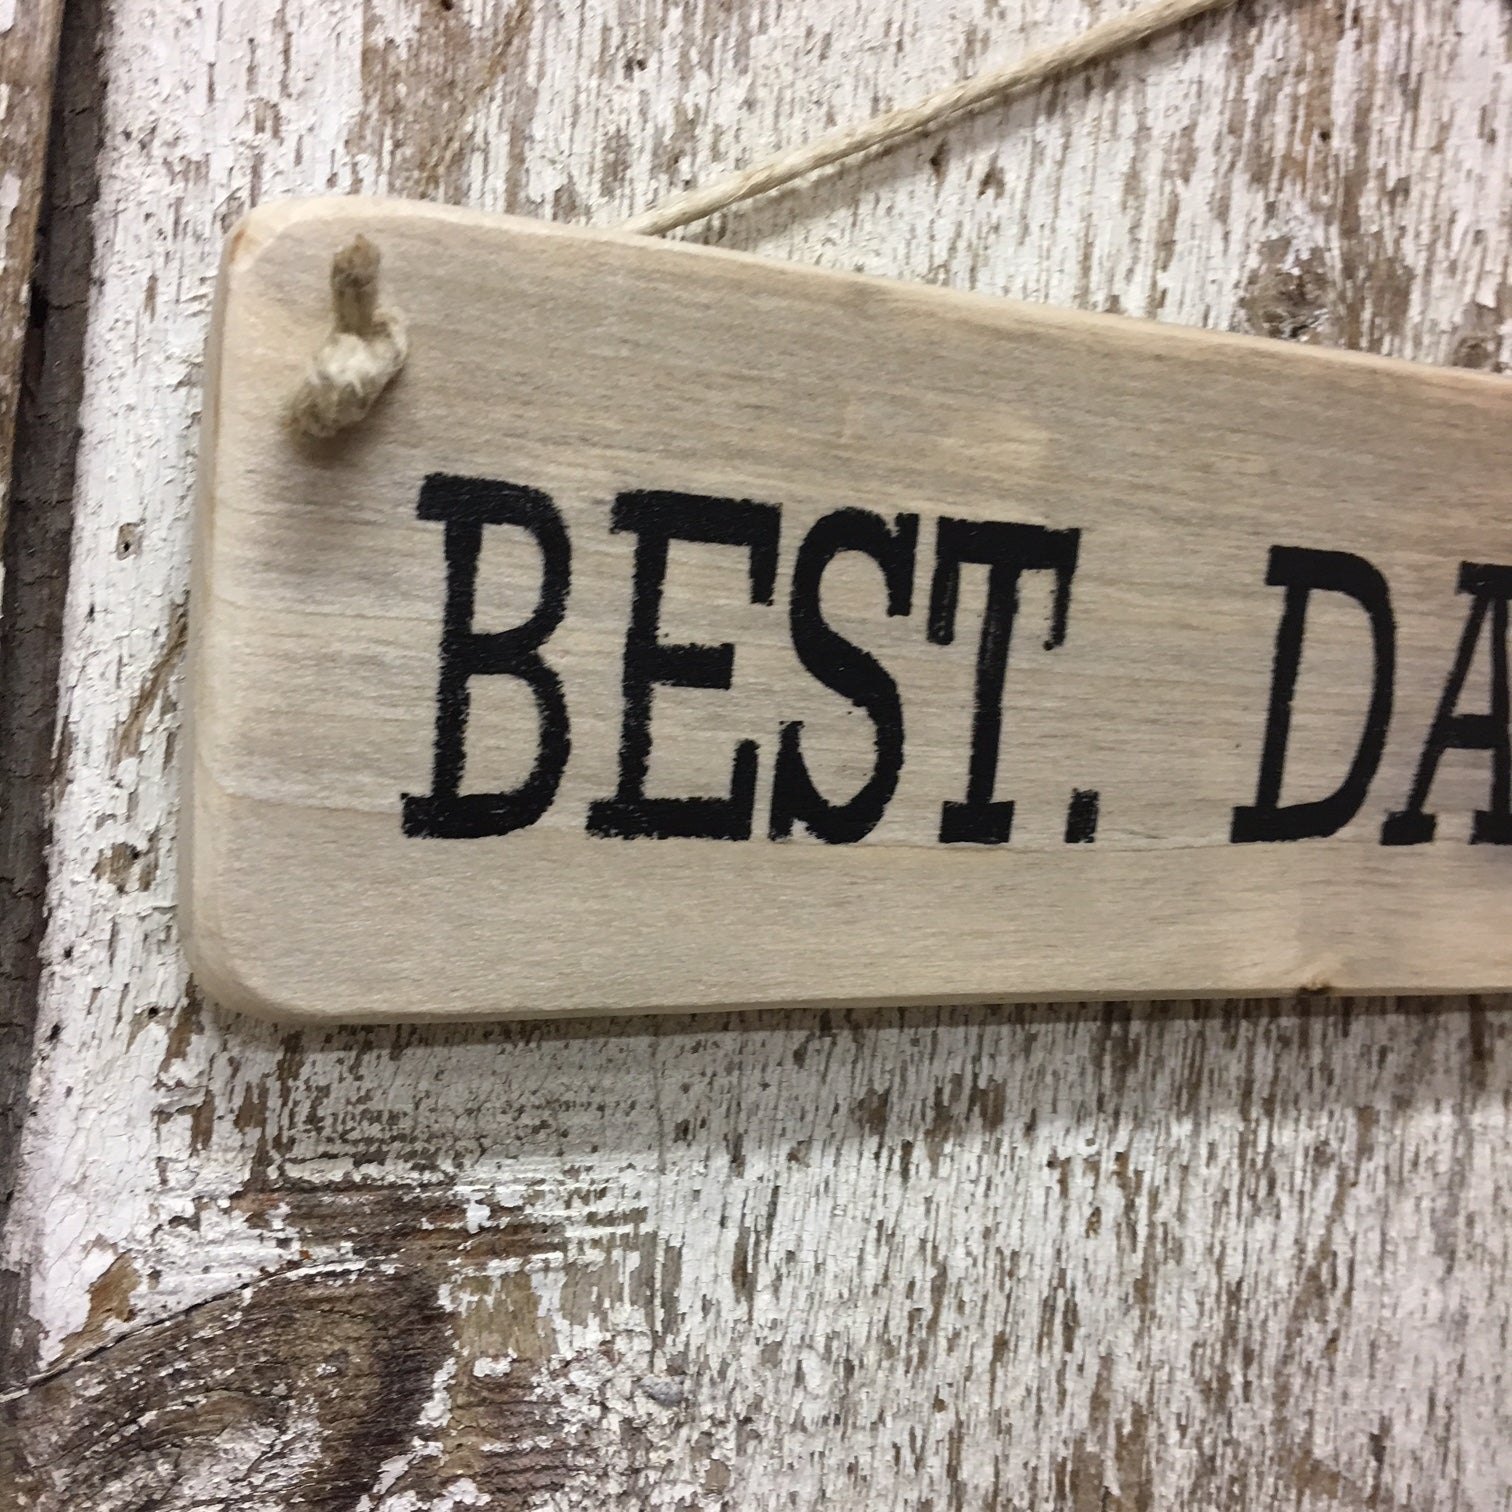 best day ever wedding sign anniversary gift ideas decor wood sign & Best Day Ever Sign - Reclaimed Wood - Wedding u0026 Anniversary Gift ...